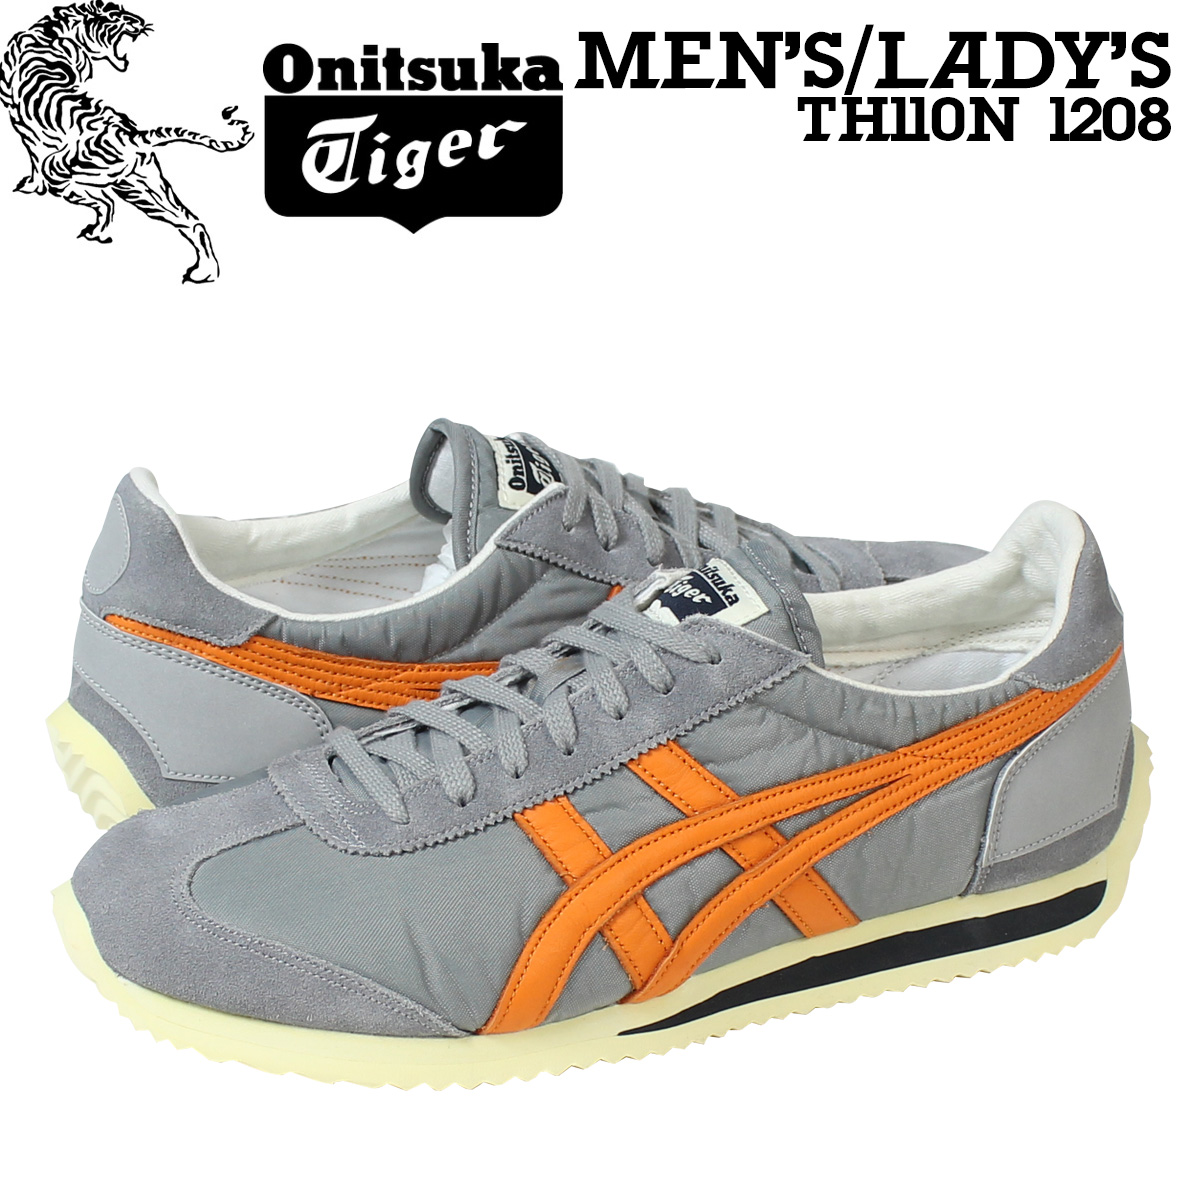 Onitsuka Tiger ASICs Onitsuka Tiger asics California sneaker CALIFORNIA 78  VIN TH 110N-1208 mens womens shoes grey